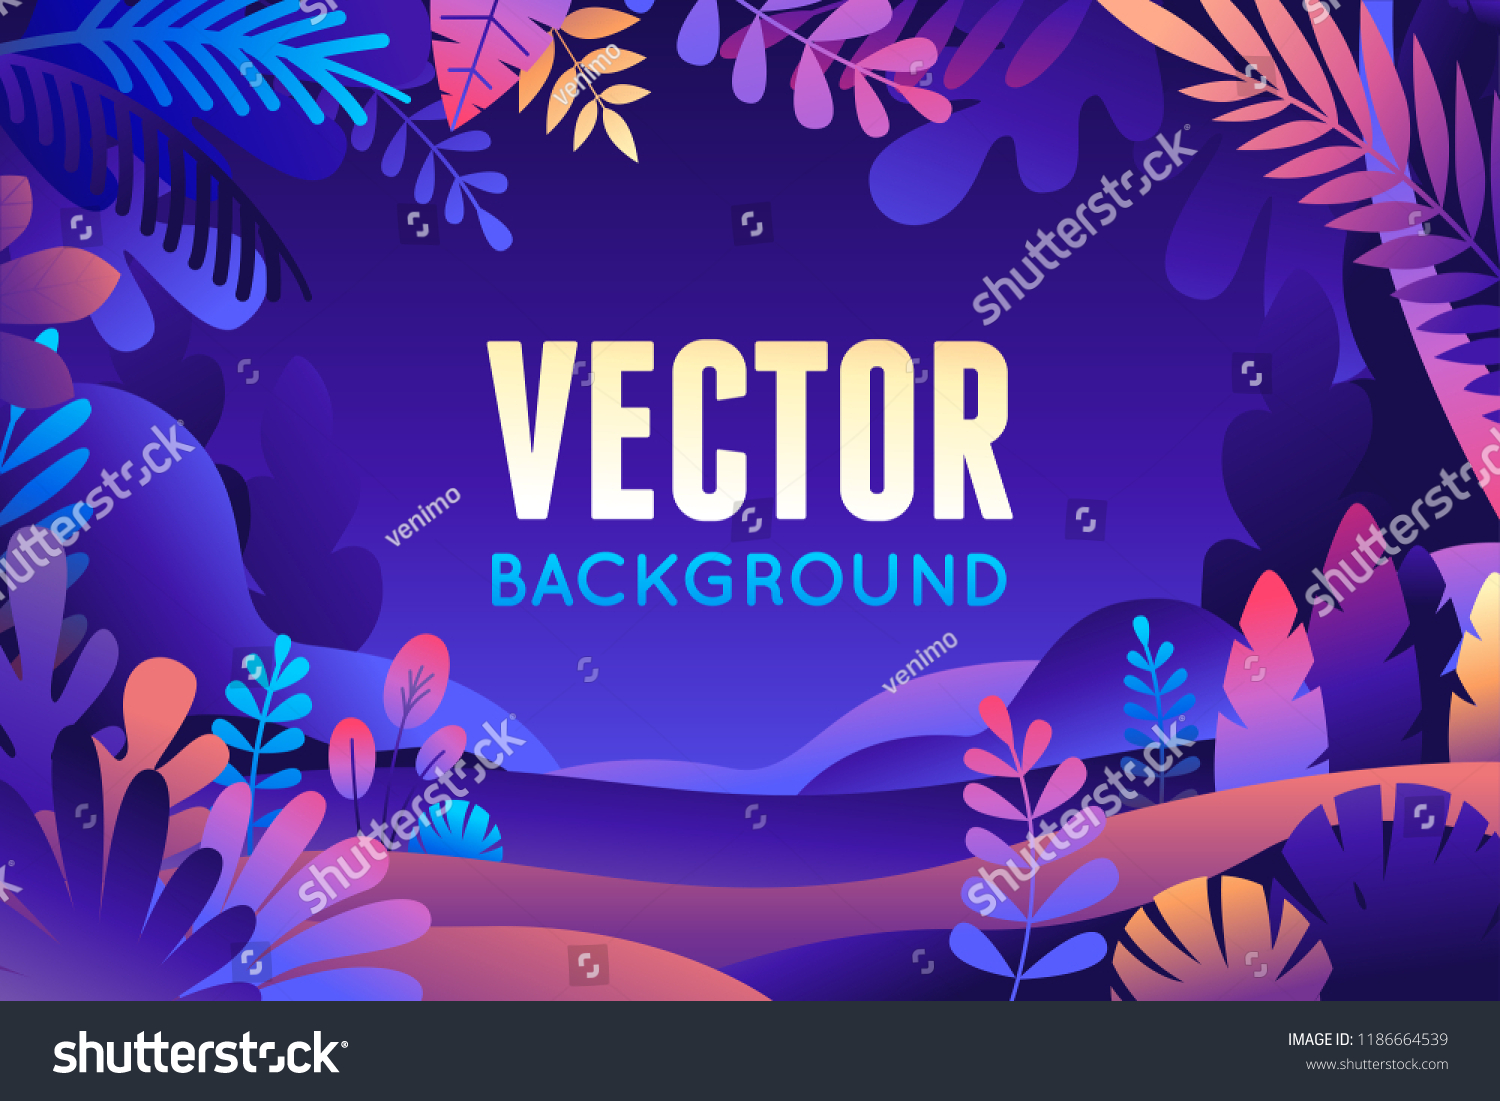 Vector illustration in trendy flat style and bright vibrant gradient colors - background with copy space for text - plants, leaves, trees and sky - background for banner, greeting card